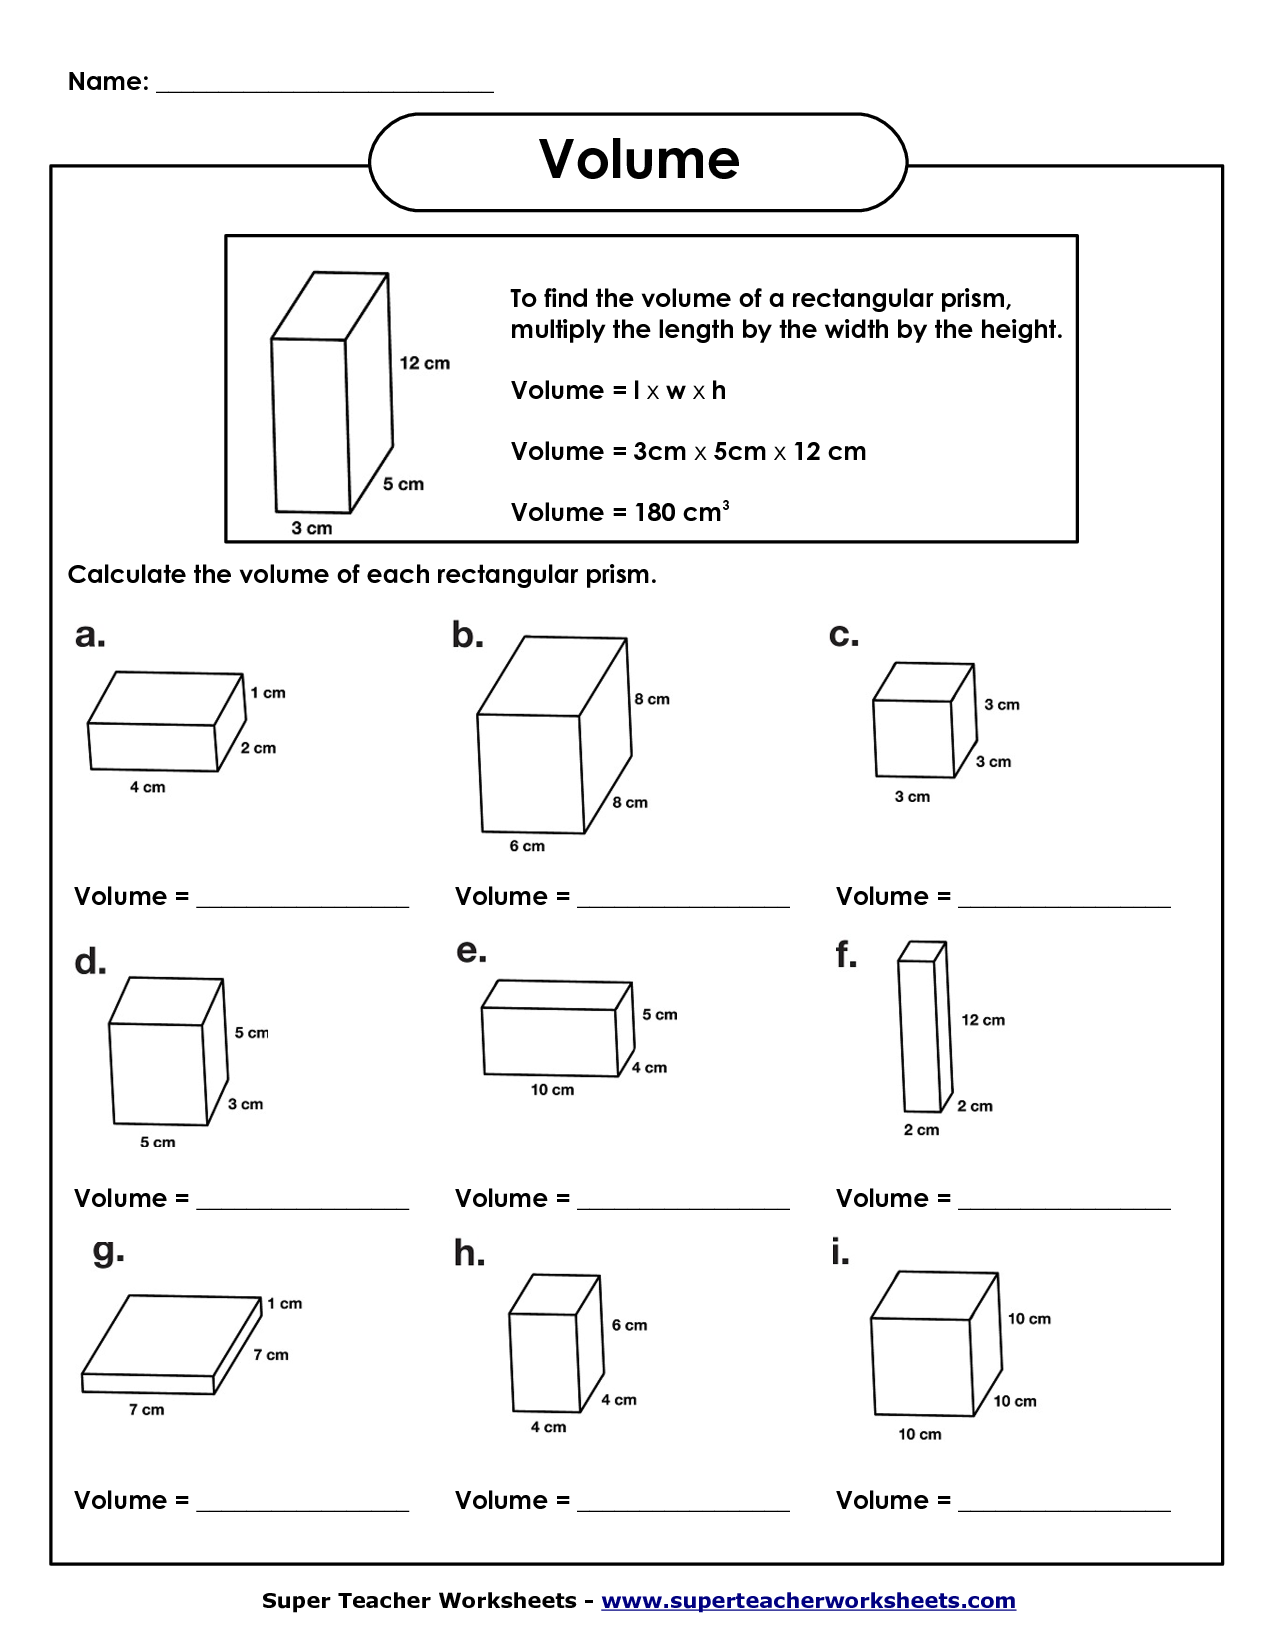 worksheet surface area volume worksheet 5th grade math volume worksheets kids study pinterest study - Surface Area And Volume Worksheet